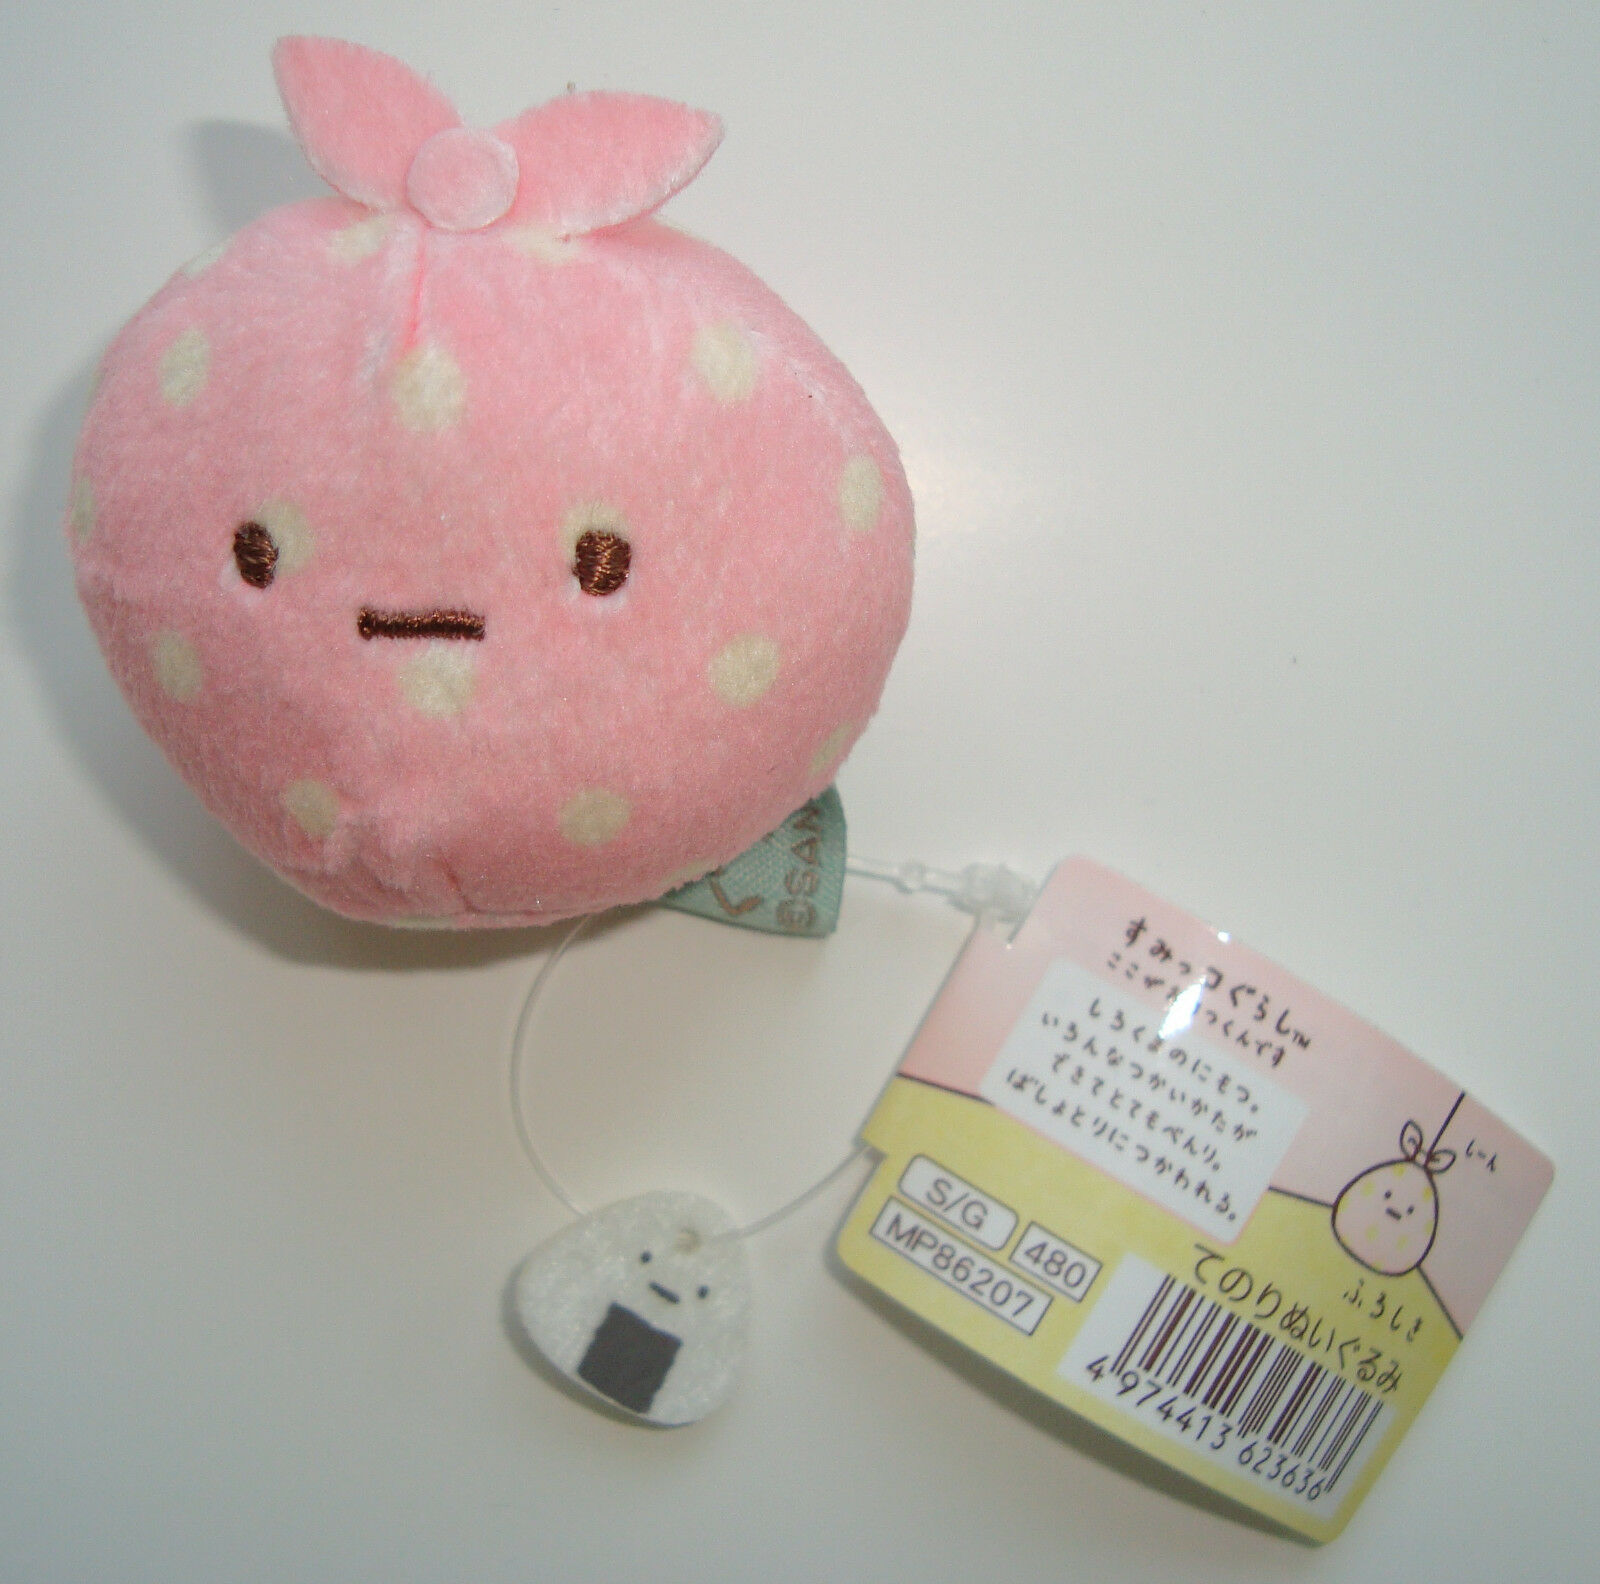 San-x Sumikko Gurashi Plush 2 Furoshiki Tenori Wrapping Cloth W/Rice Ball NWT  - $13.00